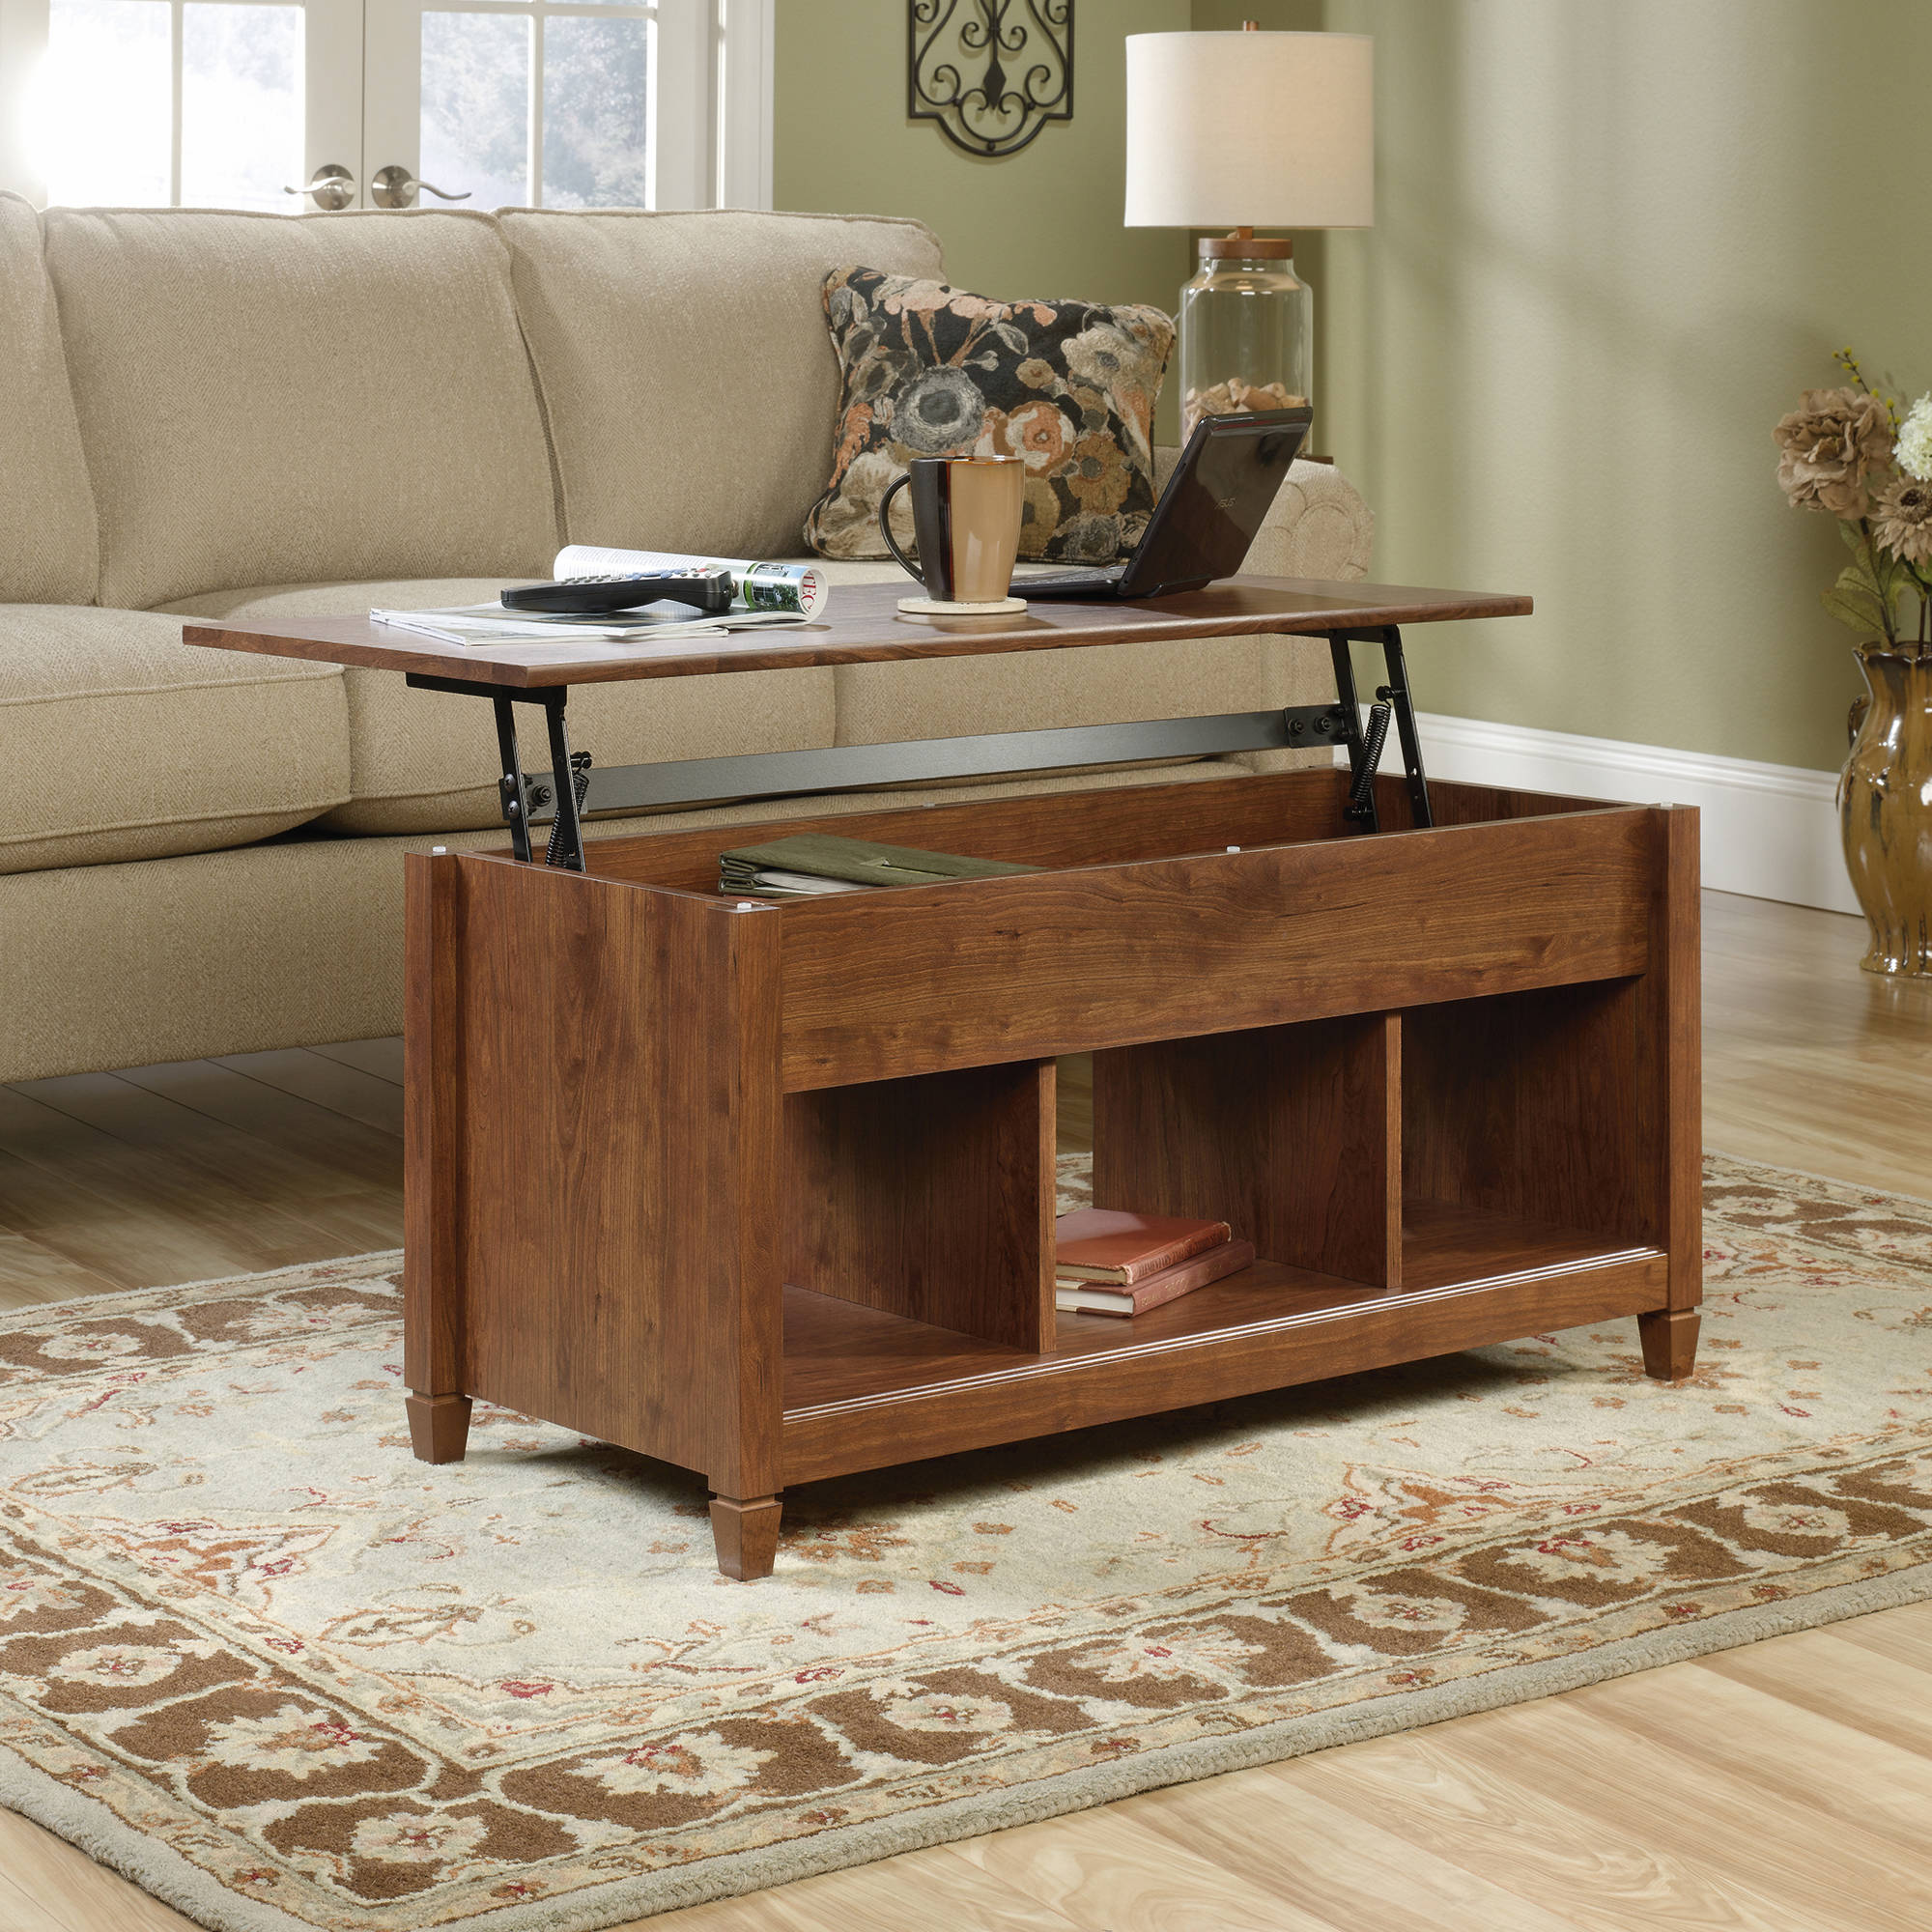 Sauder Edge Water Lift Top Coffee Table, Multiple Finishes   Walmart.com